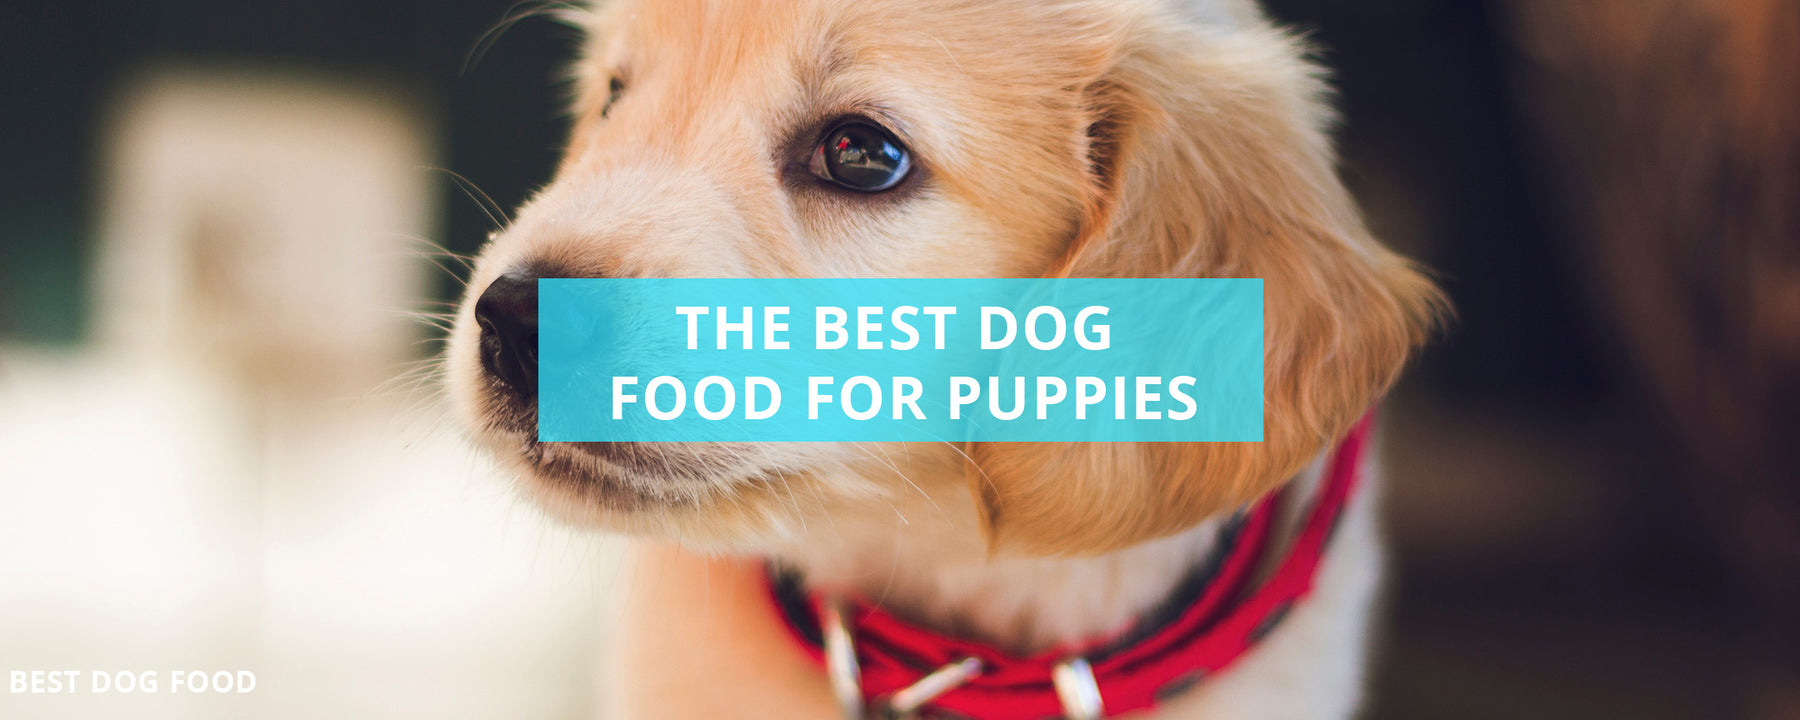 What Is The Best Dog Food For Puppies?